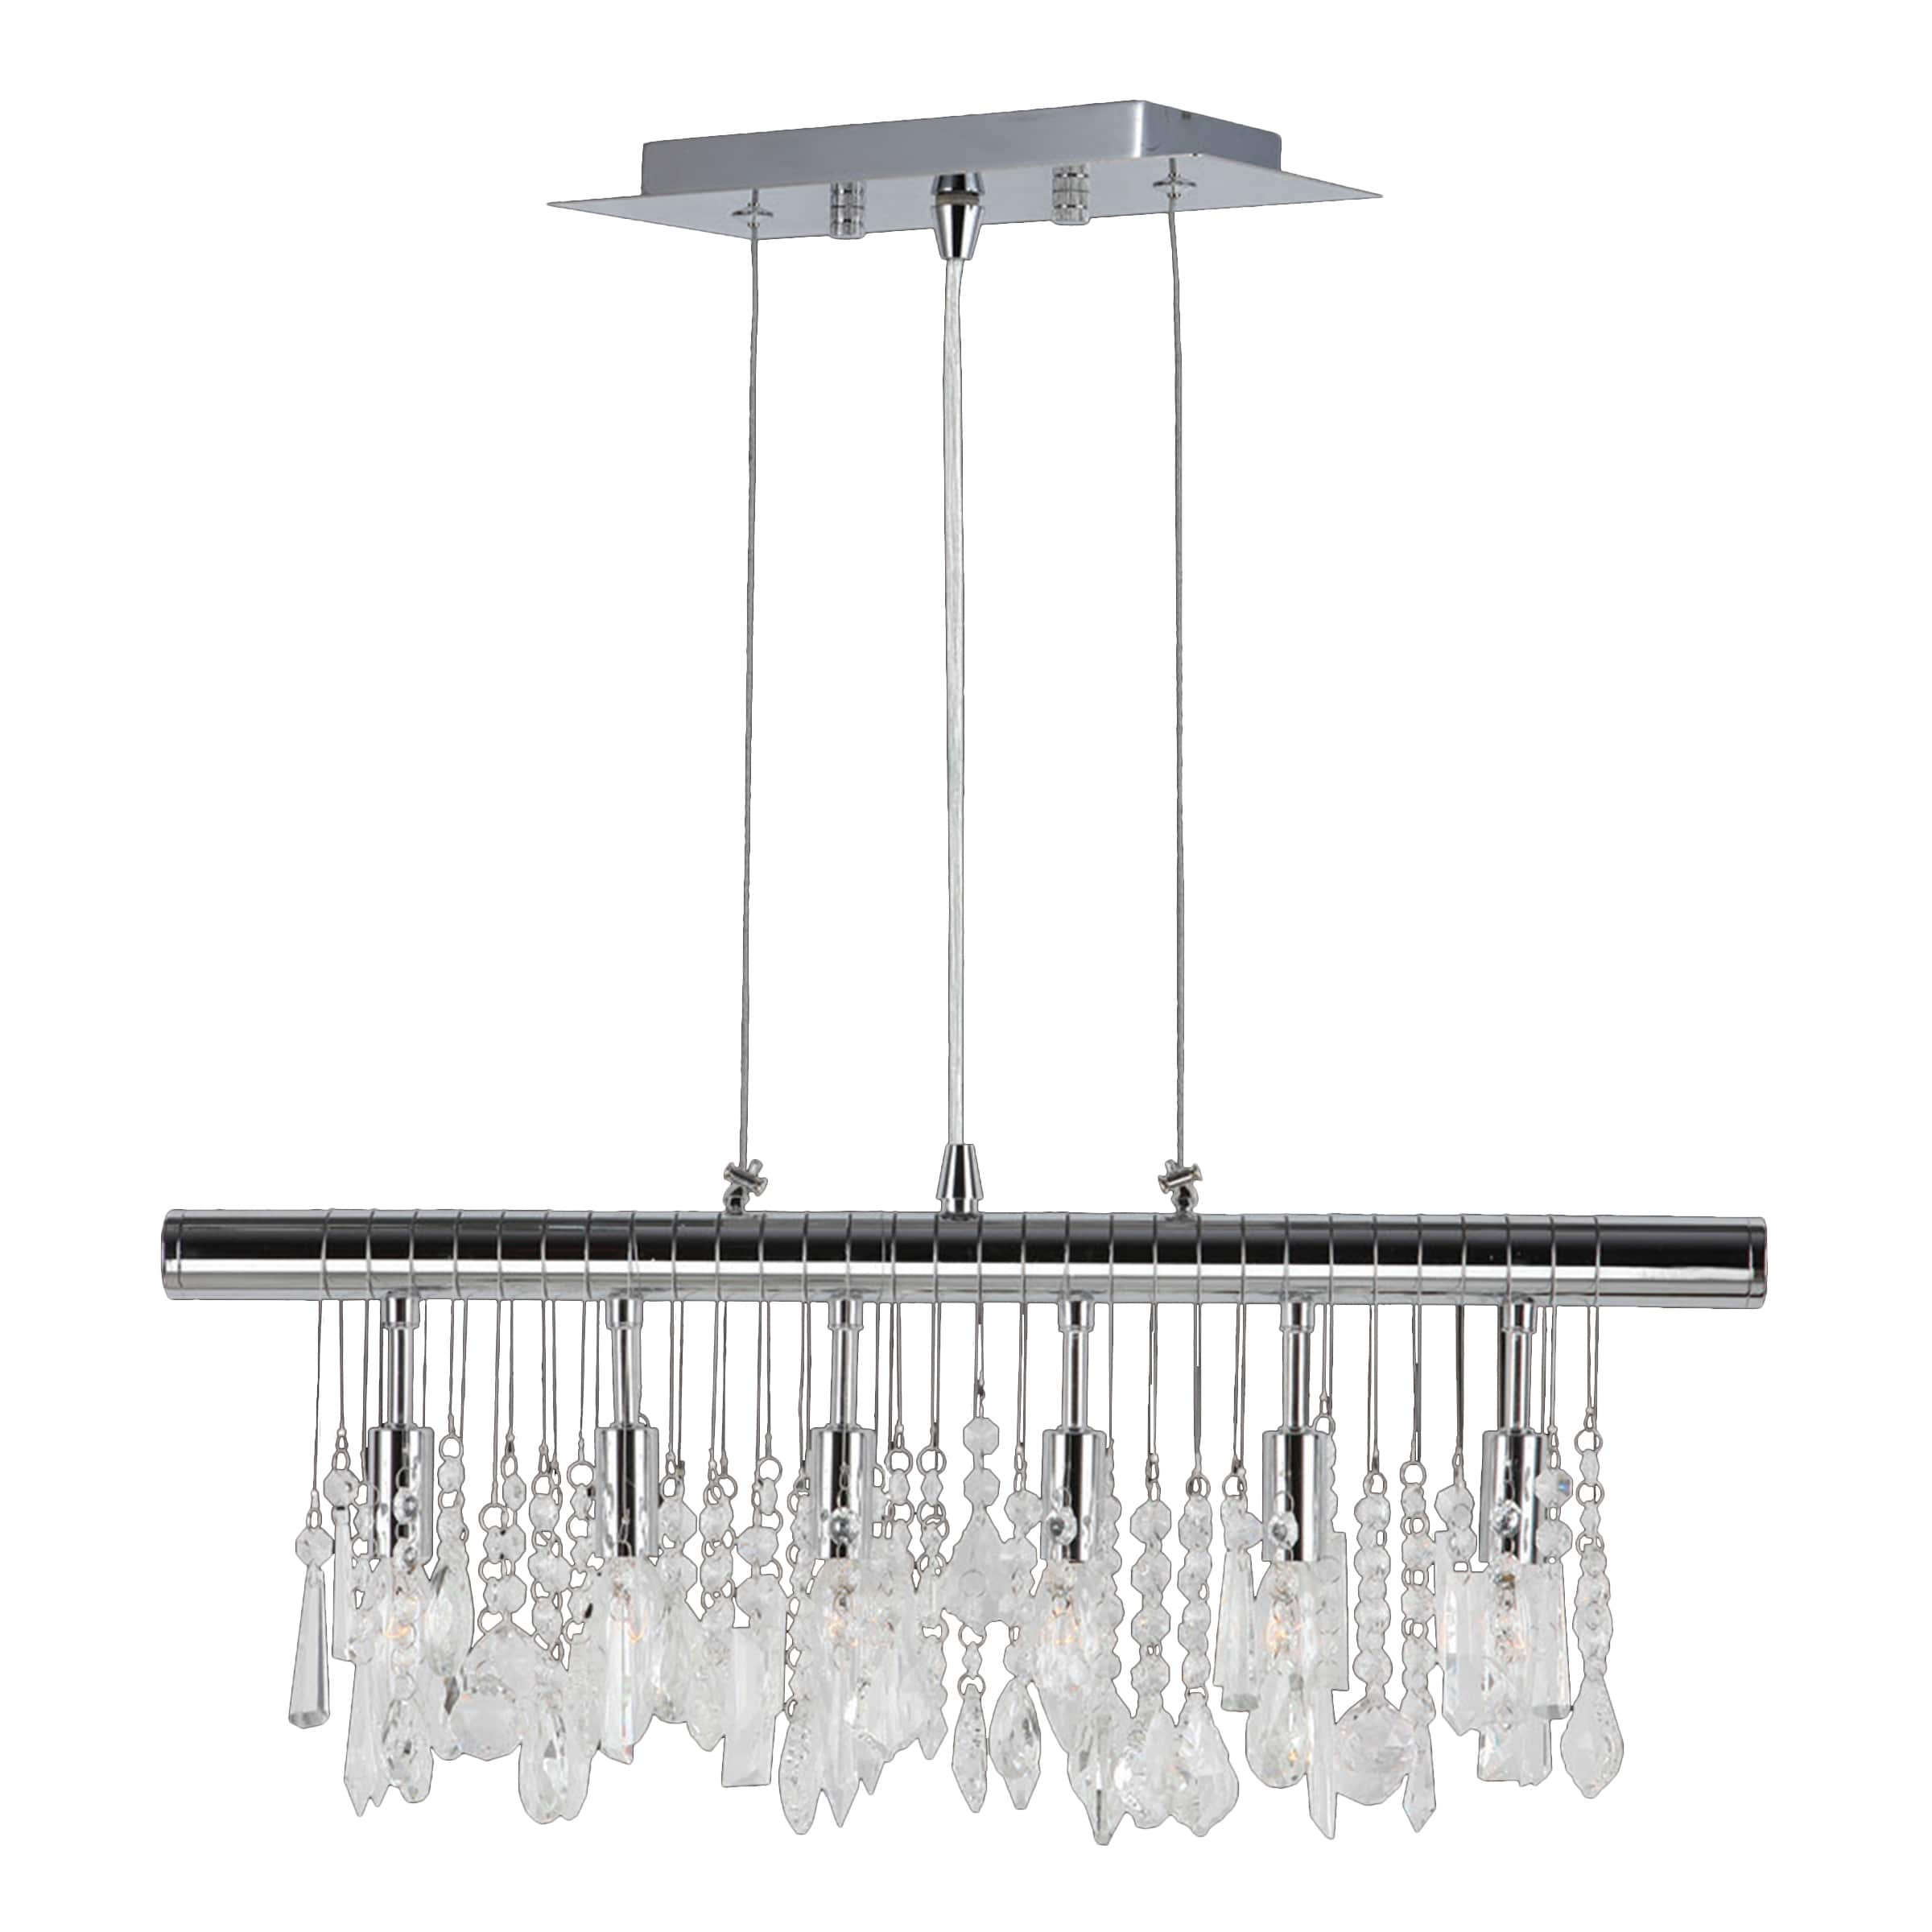 Brilliance lighting and chandeliers sparkling faceted crystal 6 light kitchen island linear pendant large 24 wide